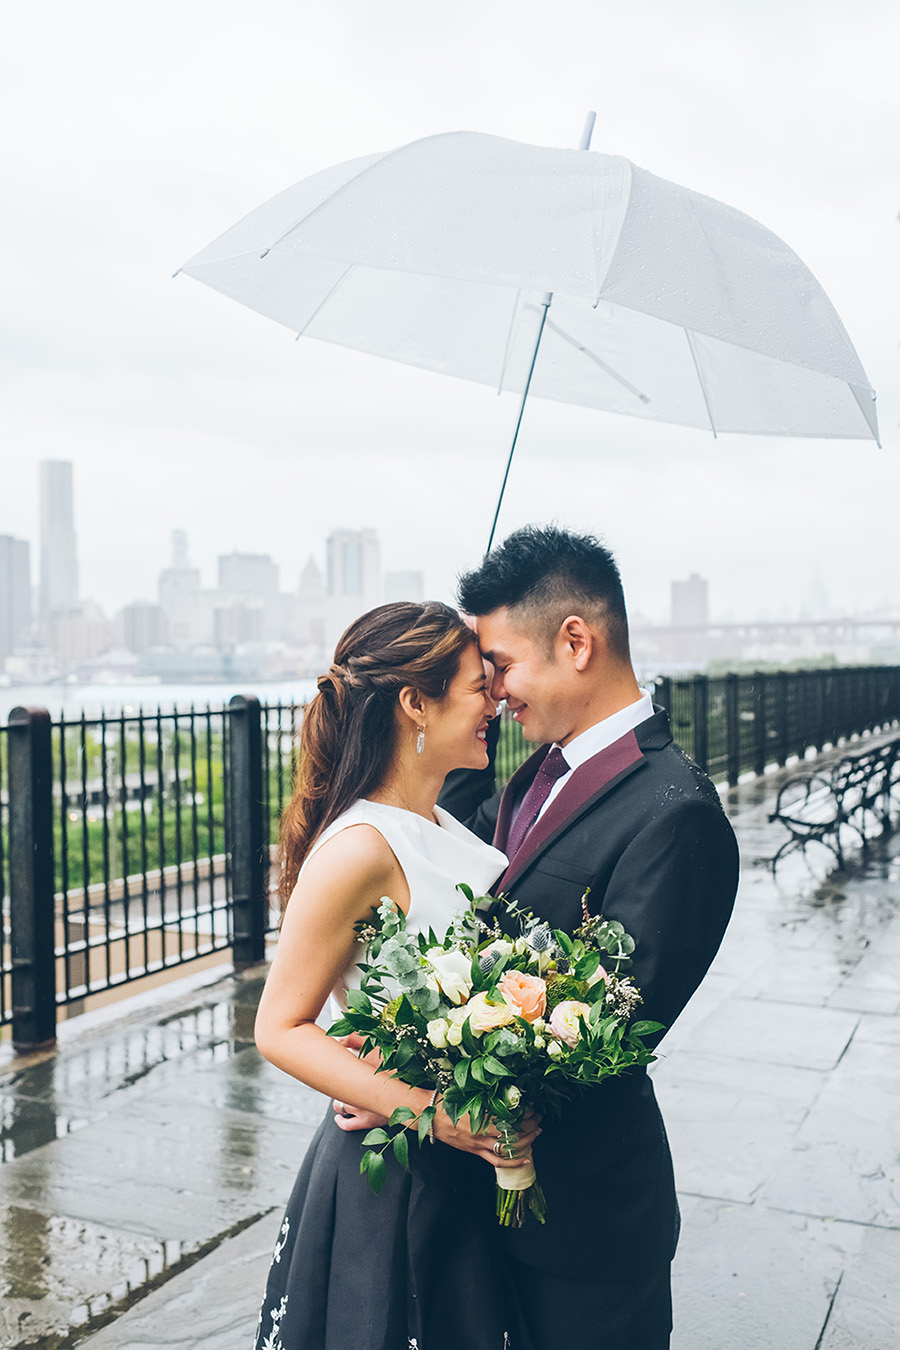 NEW-YORK-CITY-WEDDING-PHOTOGRAPHER-INTIMATE-WEDDING-ELOPEMENT-BROOKLYN-PROMENADE-CITYHALL-MANHATTAN-BROOKLYN-WEDDING-PHOTOGRAPHY-JackieAaron-0028.jpg